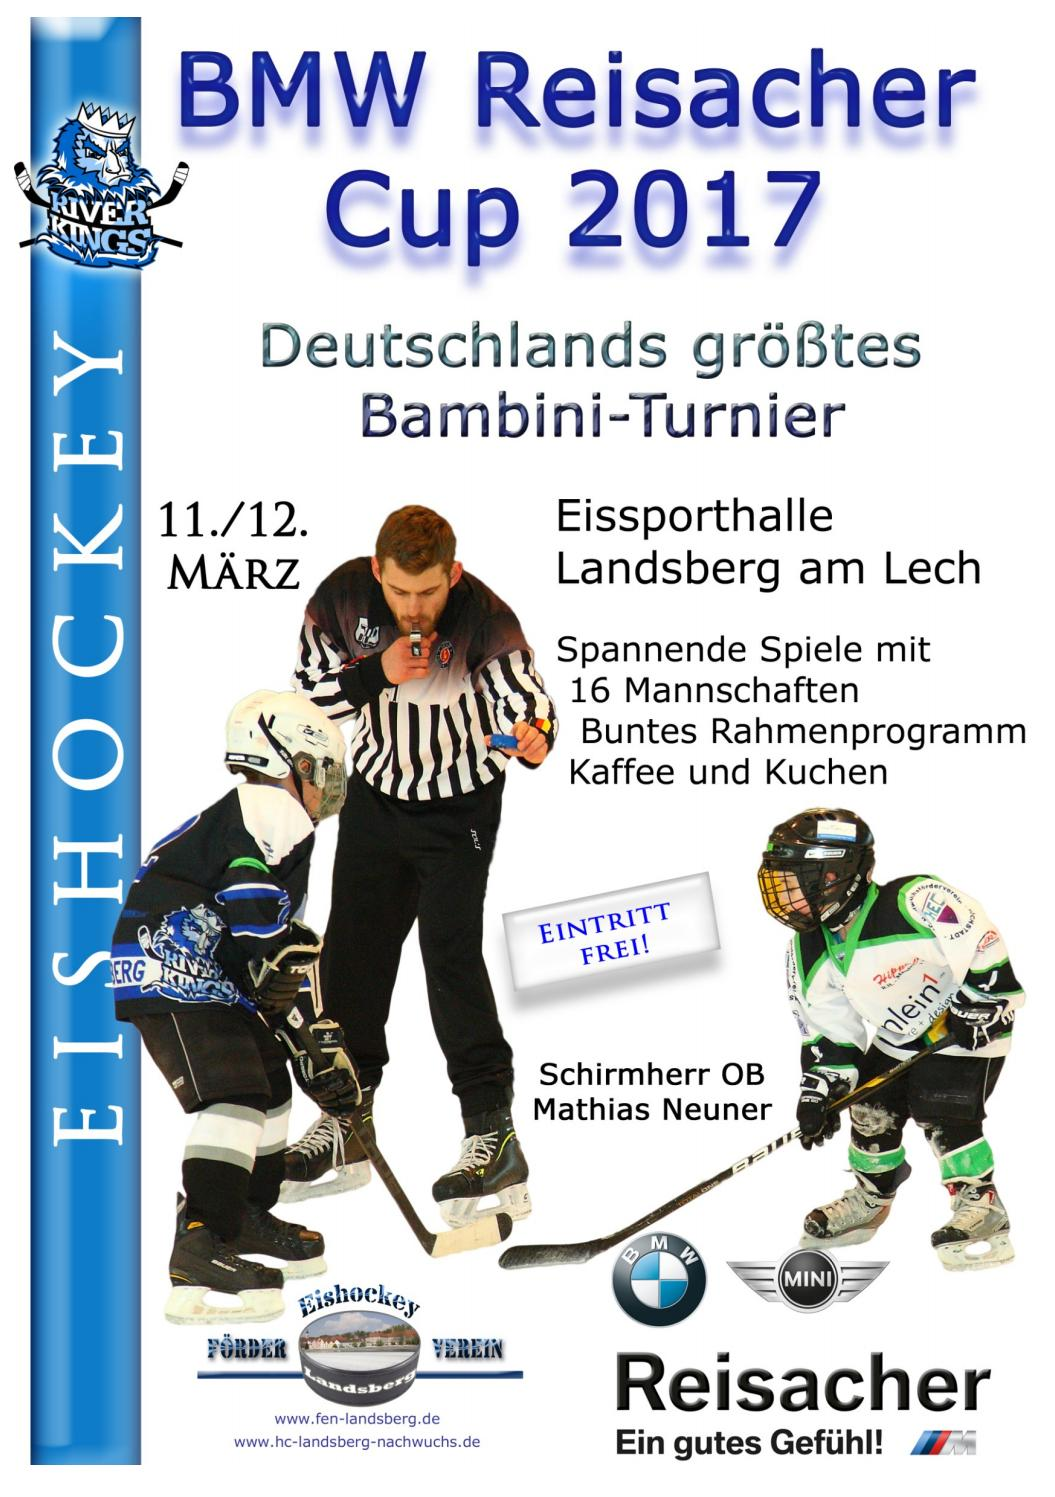 BMW Reisacher Cup 2017 by Eishockey Landsberg - issuu